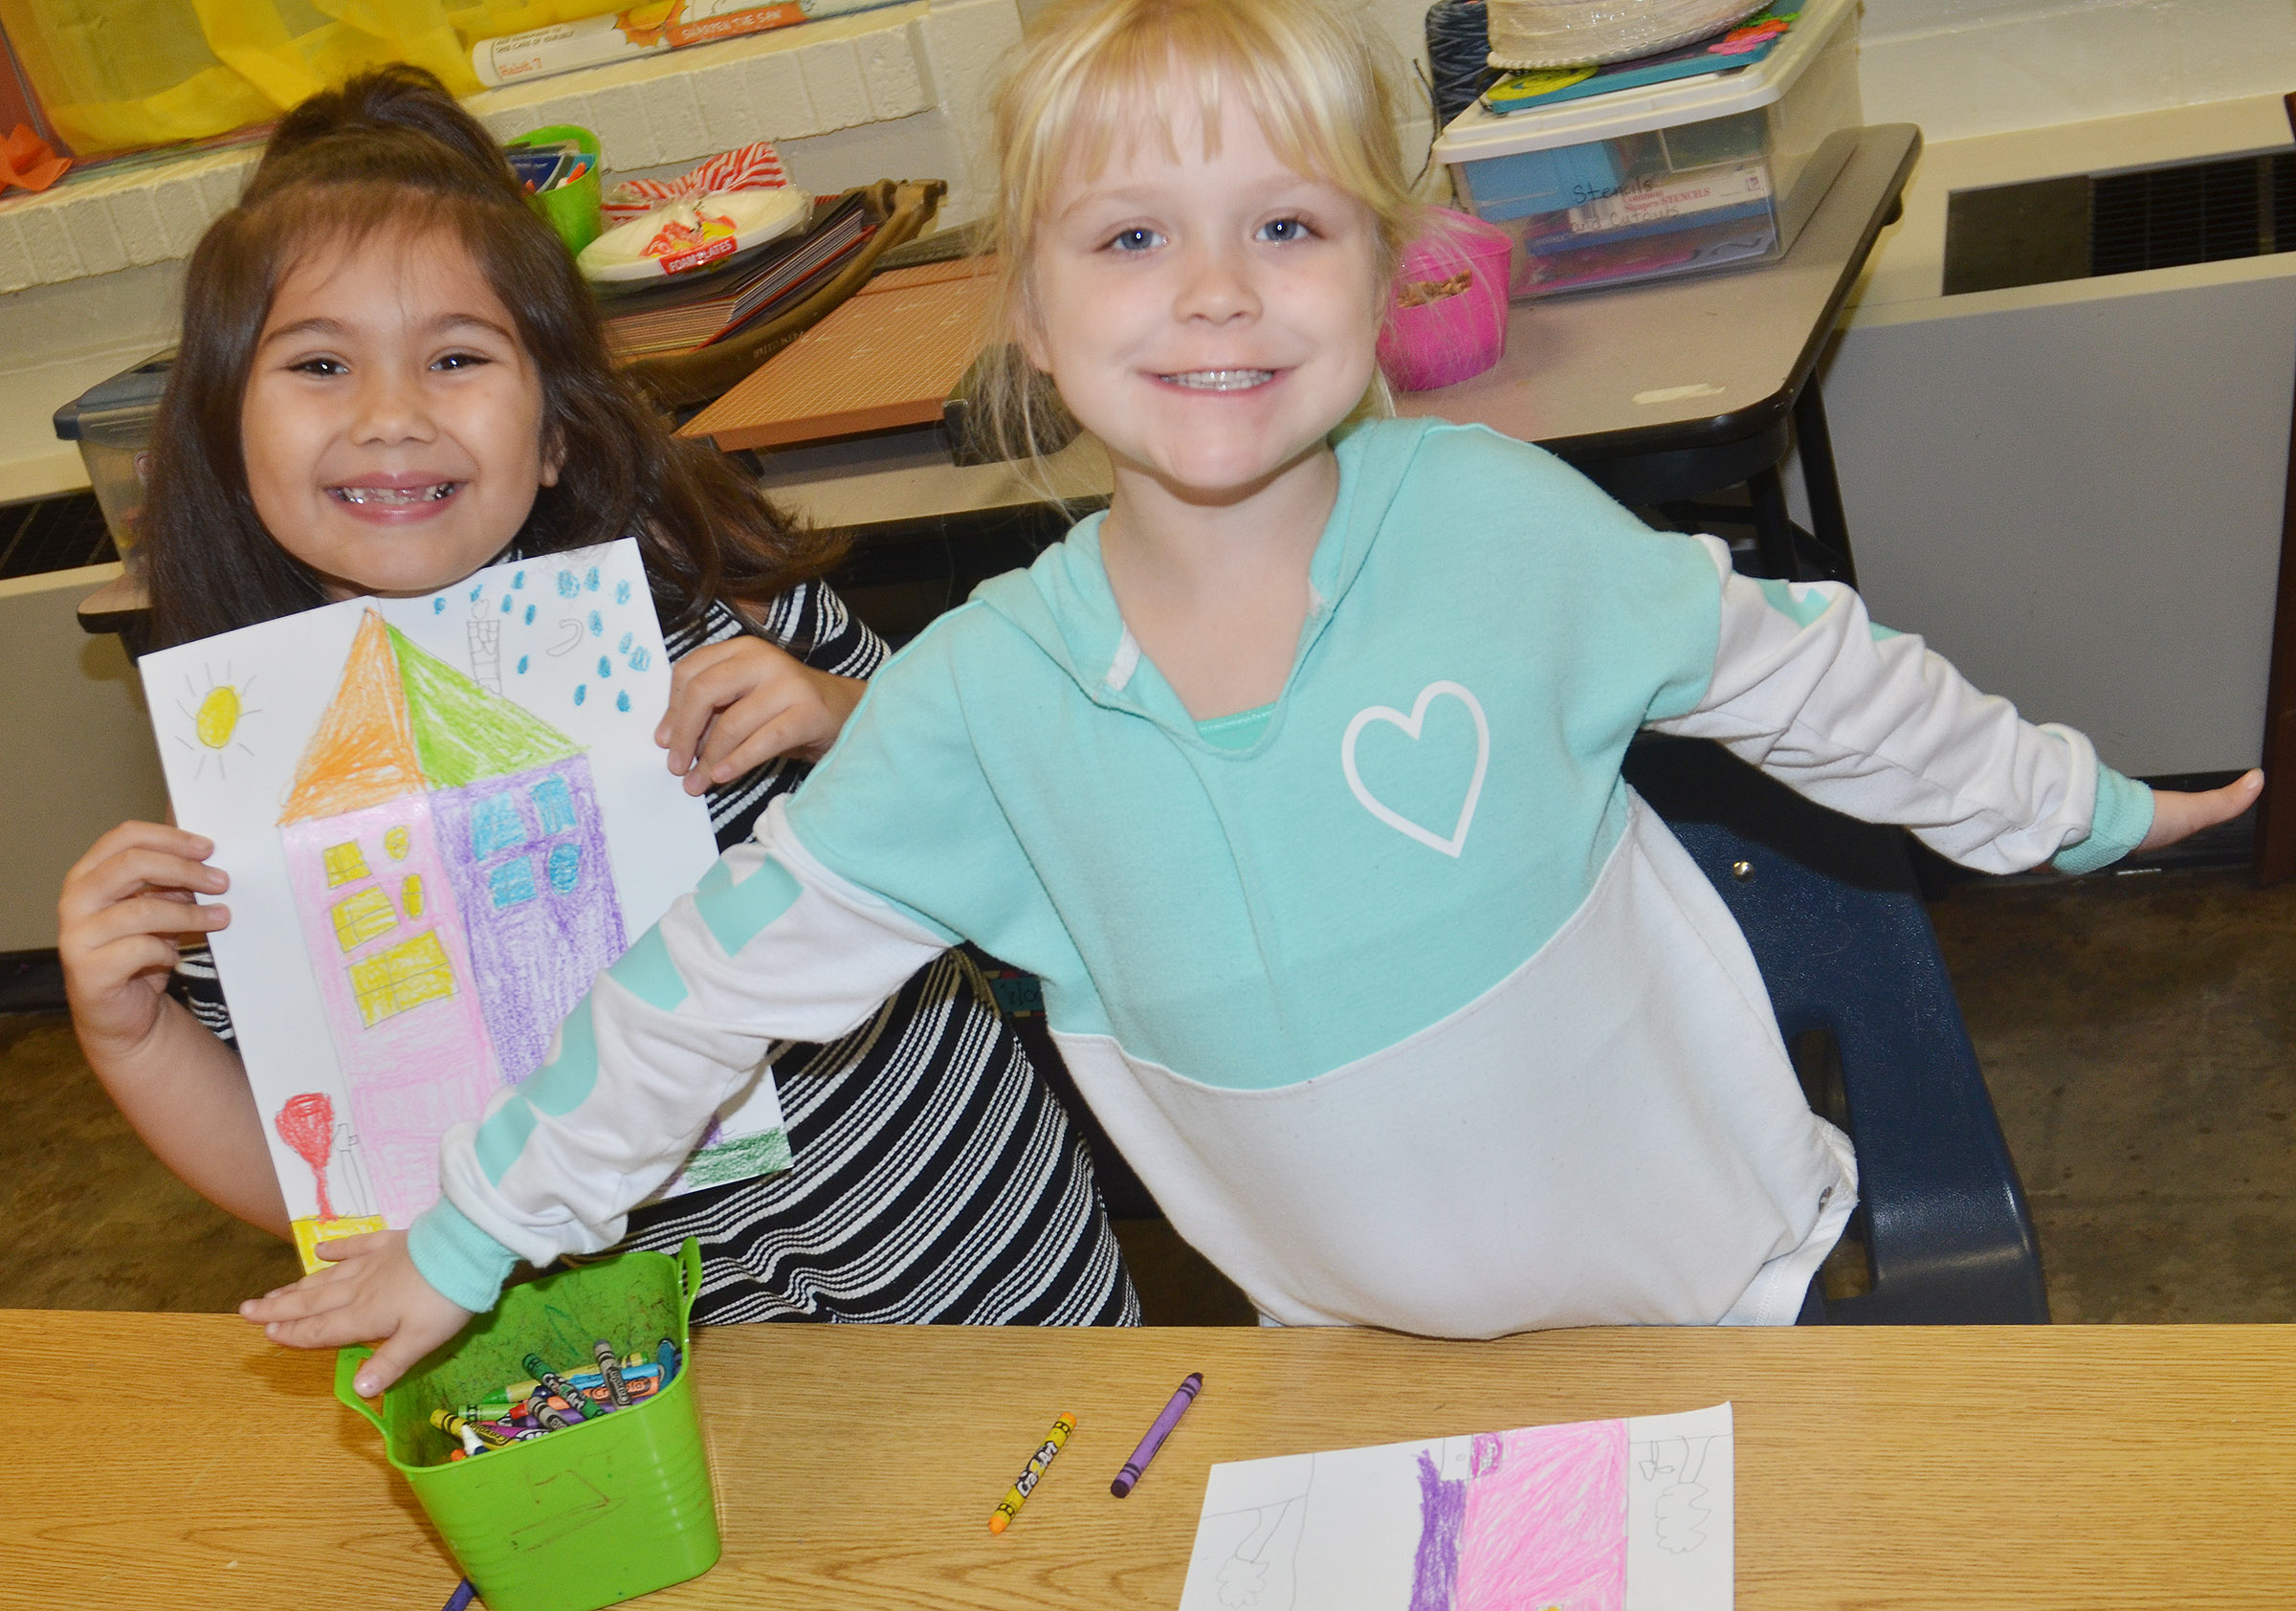 CES first-graders Hannah Matias, at left, and Ava Bennett-Marr show off their warm and cool color houses.